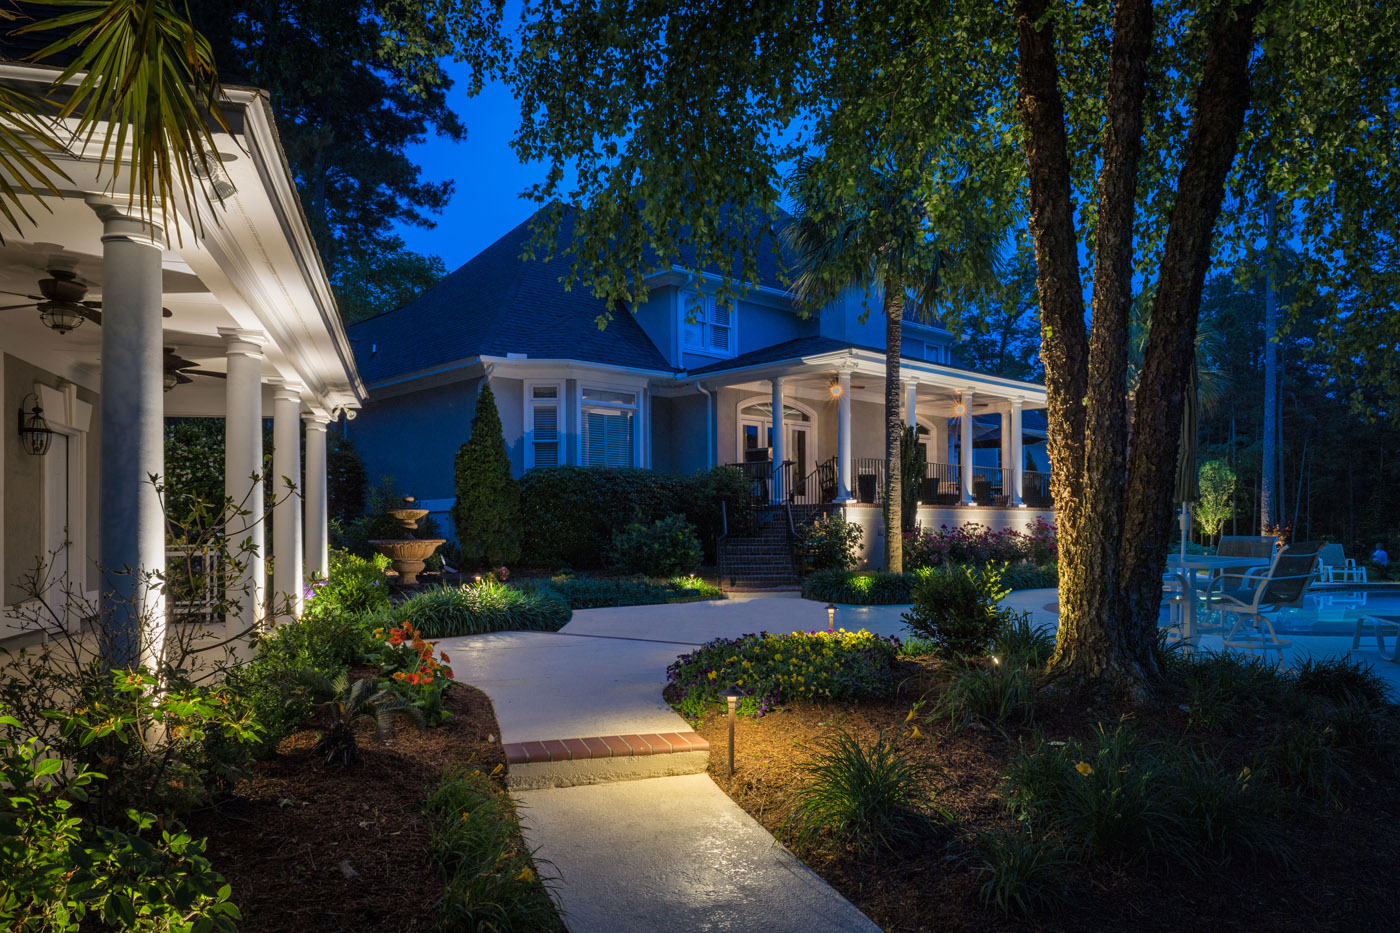 Landscape lighting highlights your spring remodeling and renovation unlike other companies outdoor lighting is all we do we are not about just fixtures we are about the design and effect our landscape lighting delivers aloadofball Image collections